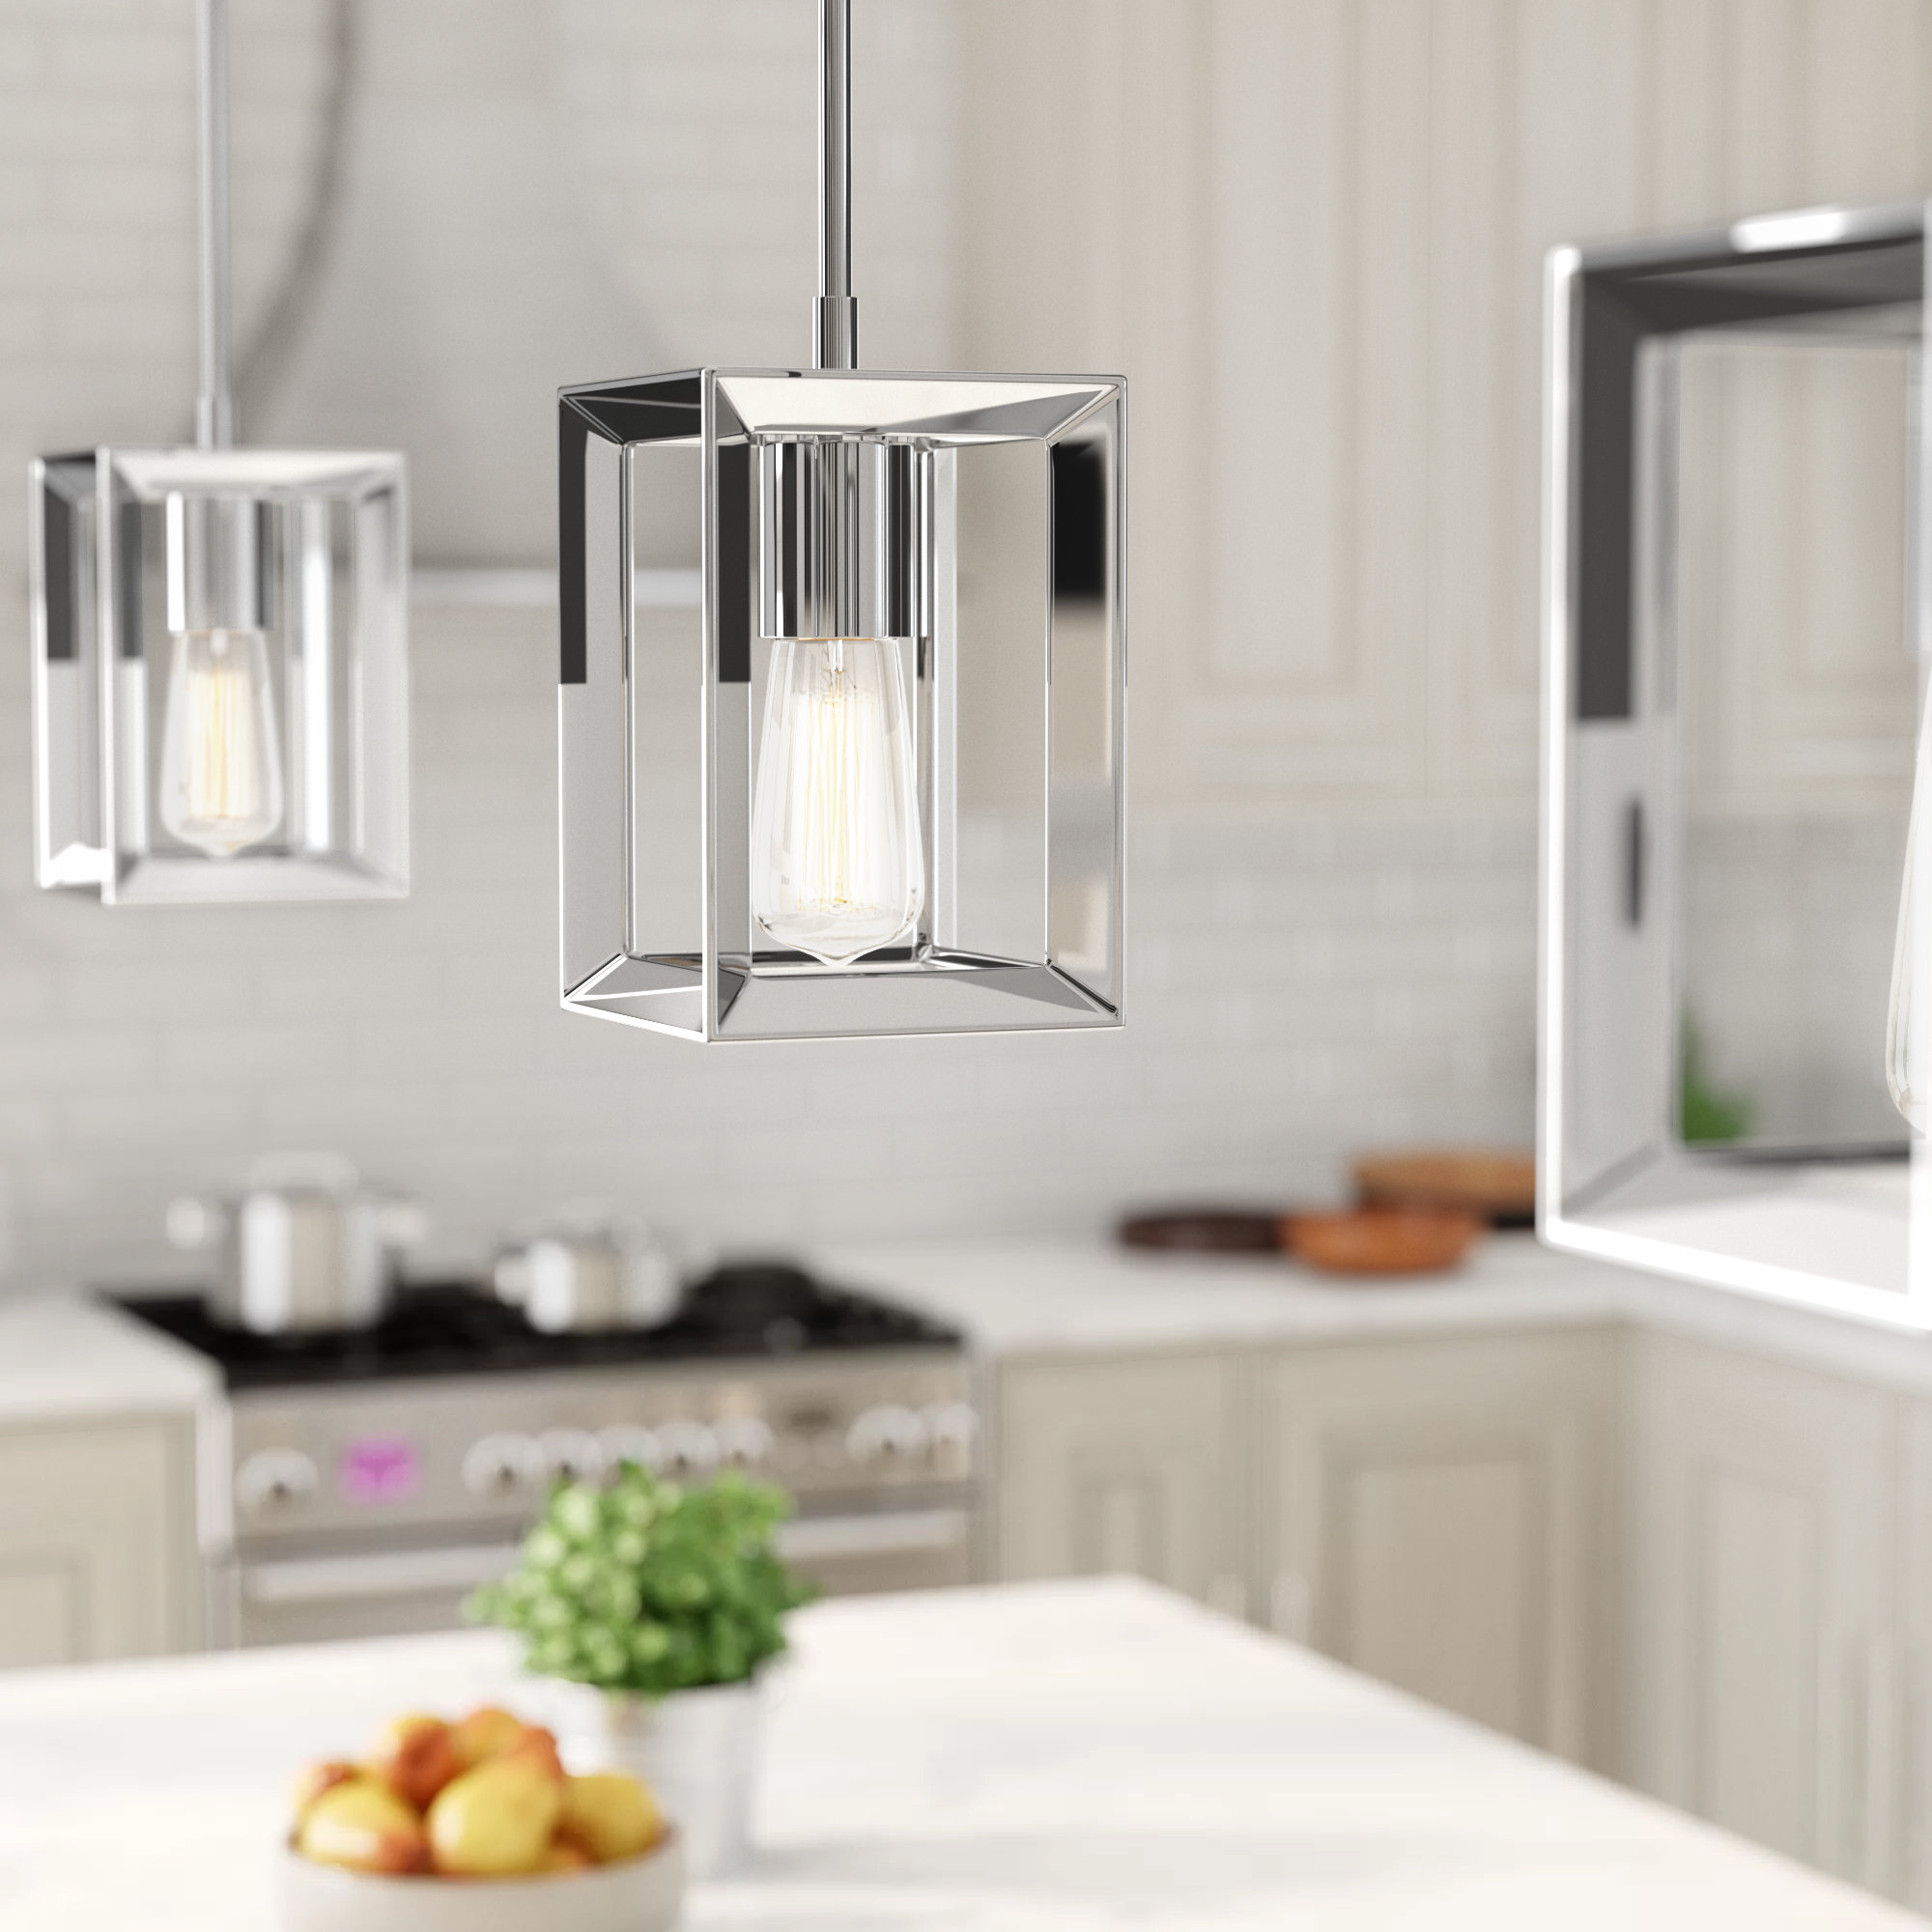 Widely Used Thorne 4 Light Lantern Rectangle Pendants Regarding Thorne 1 Light Square/rectangle Pendant (View 19 of 20)